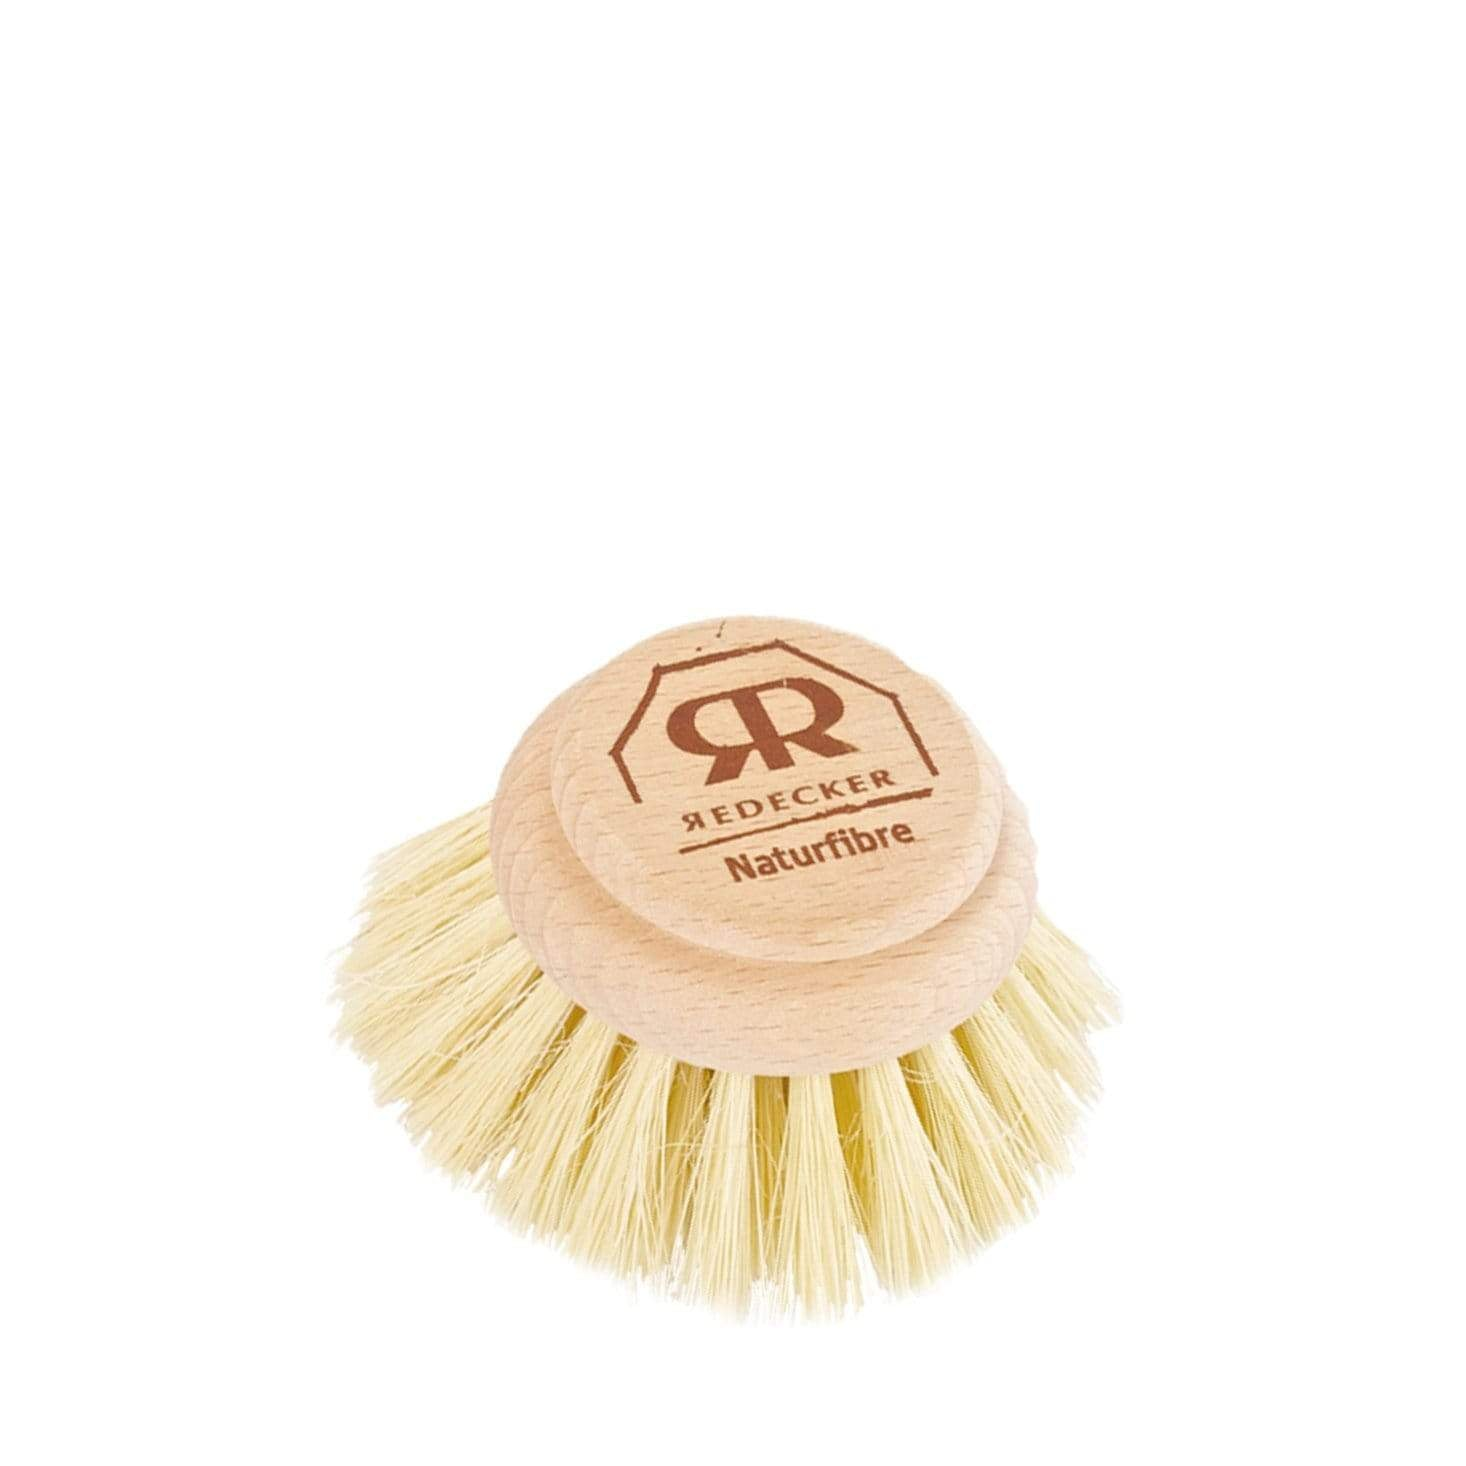 Dish Brush Replacement Head Natural 5cm